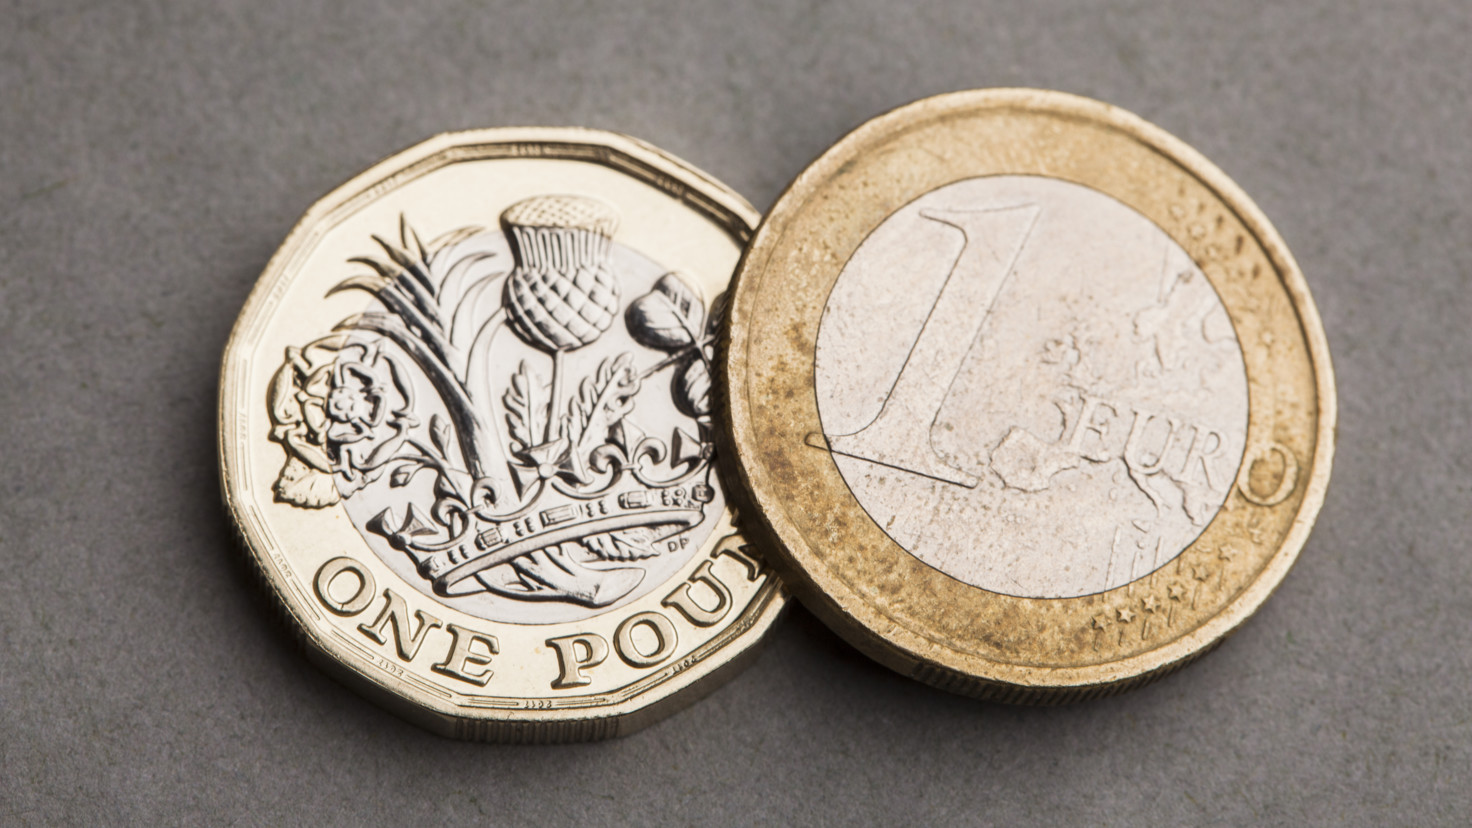 July, 16 - EUR/GBP regained positive traction on Thursday